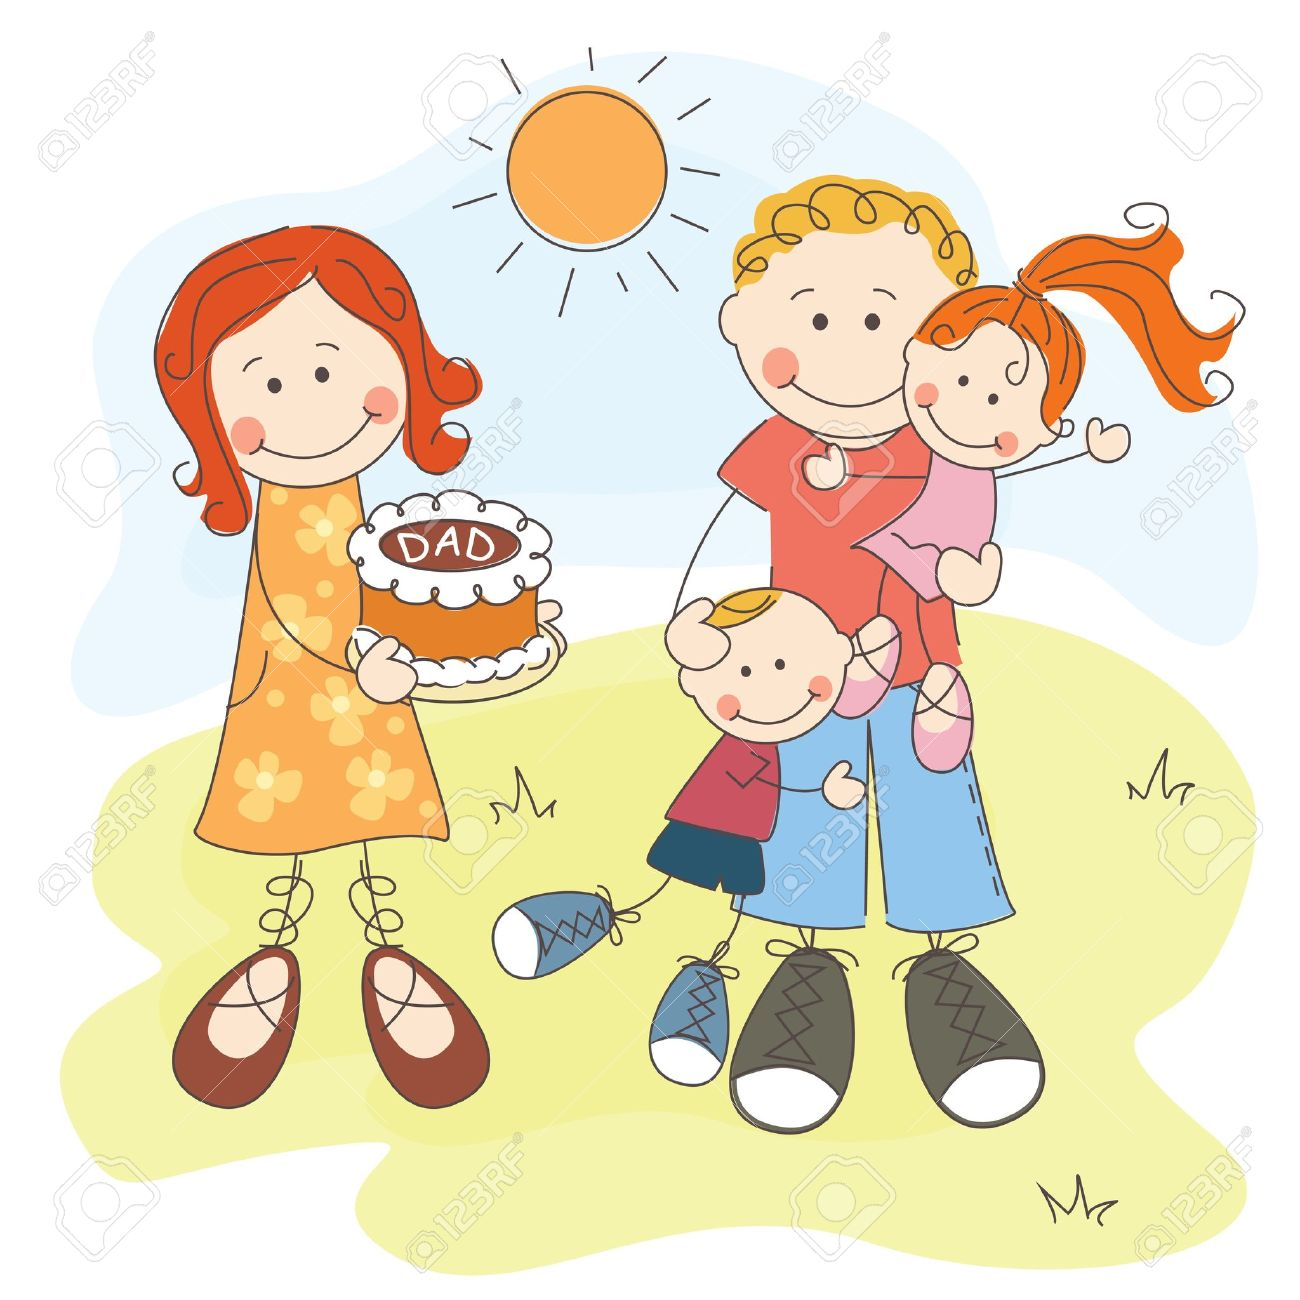 Clipart mama papa jpg transparent download Clipart papa et maman - ClipartFox jpg transparent download